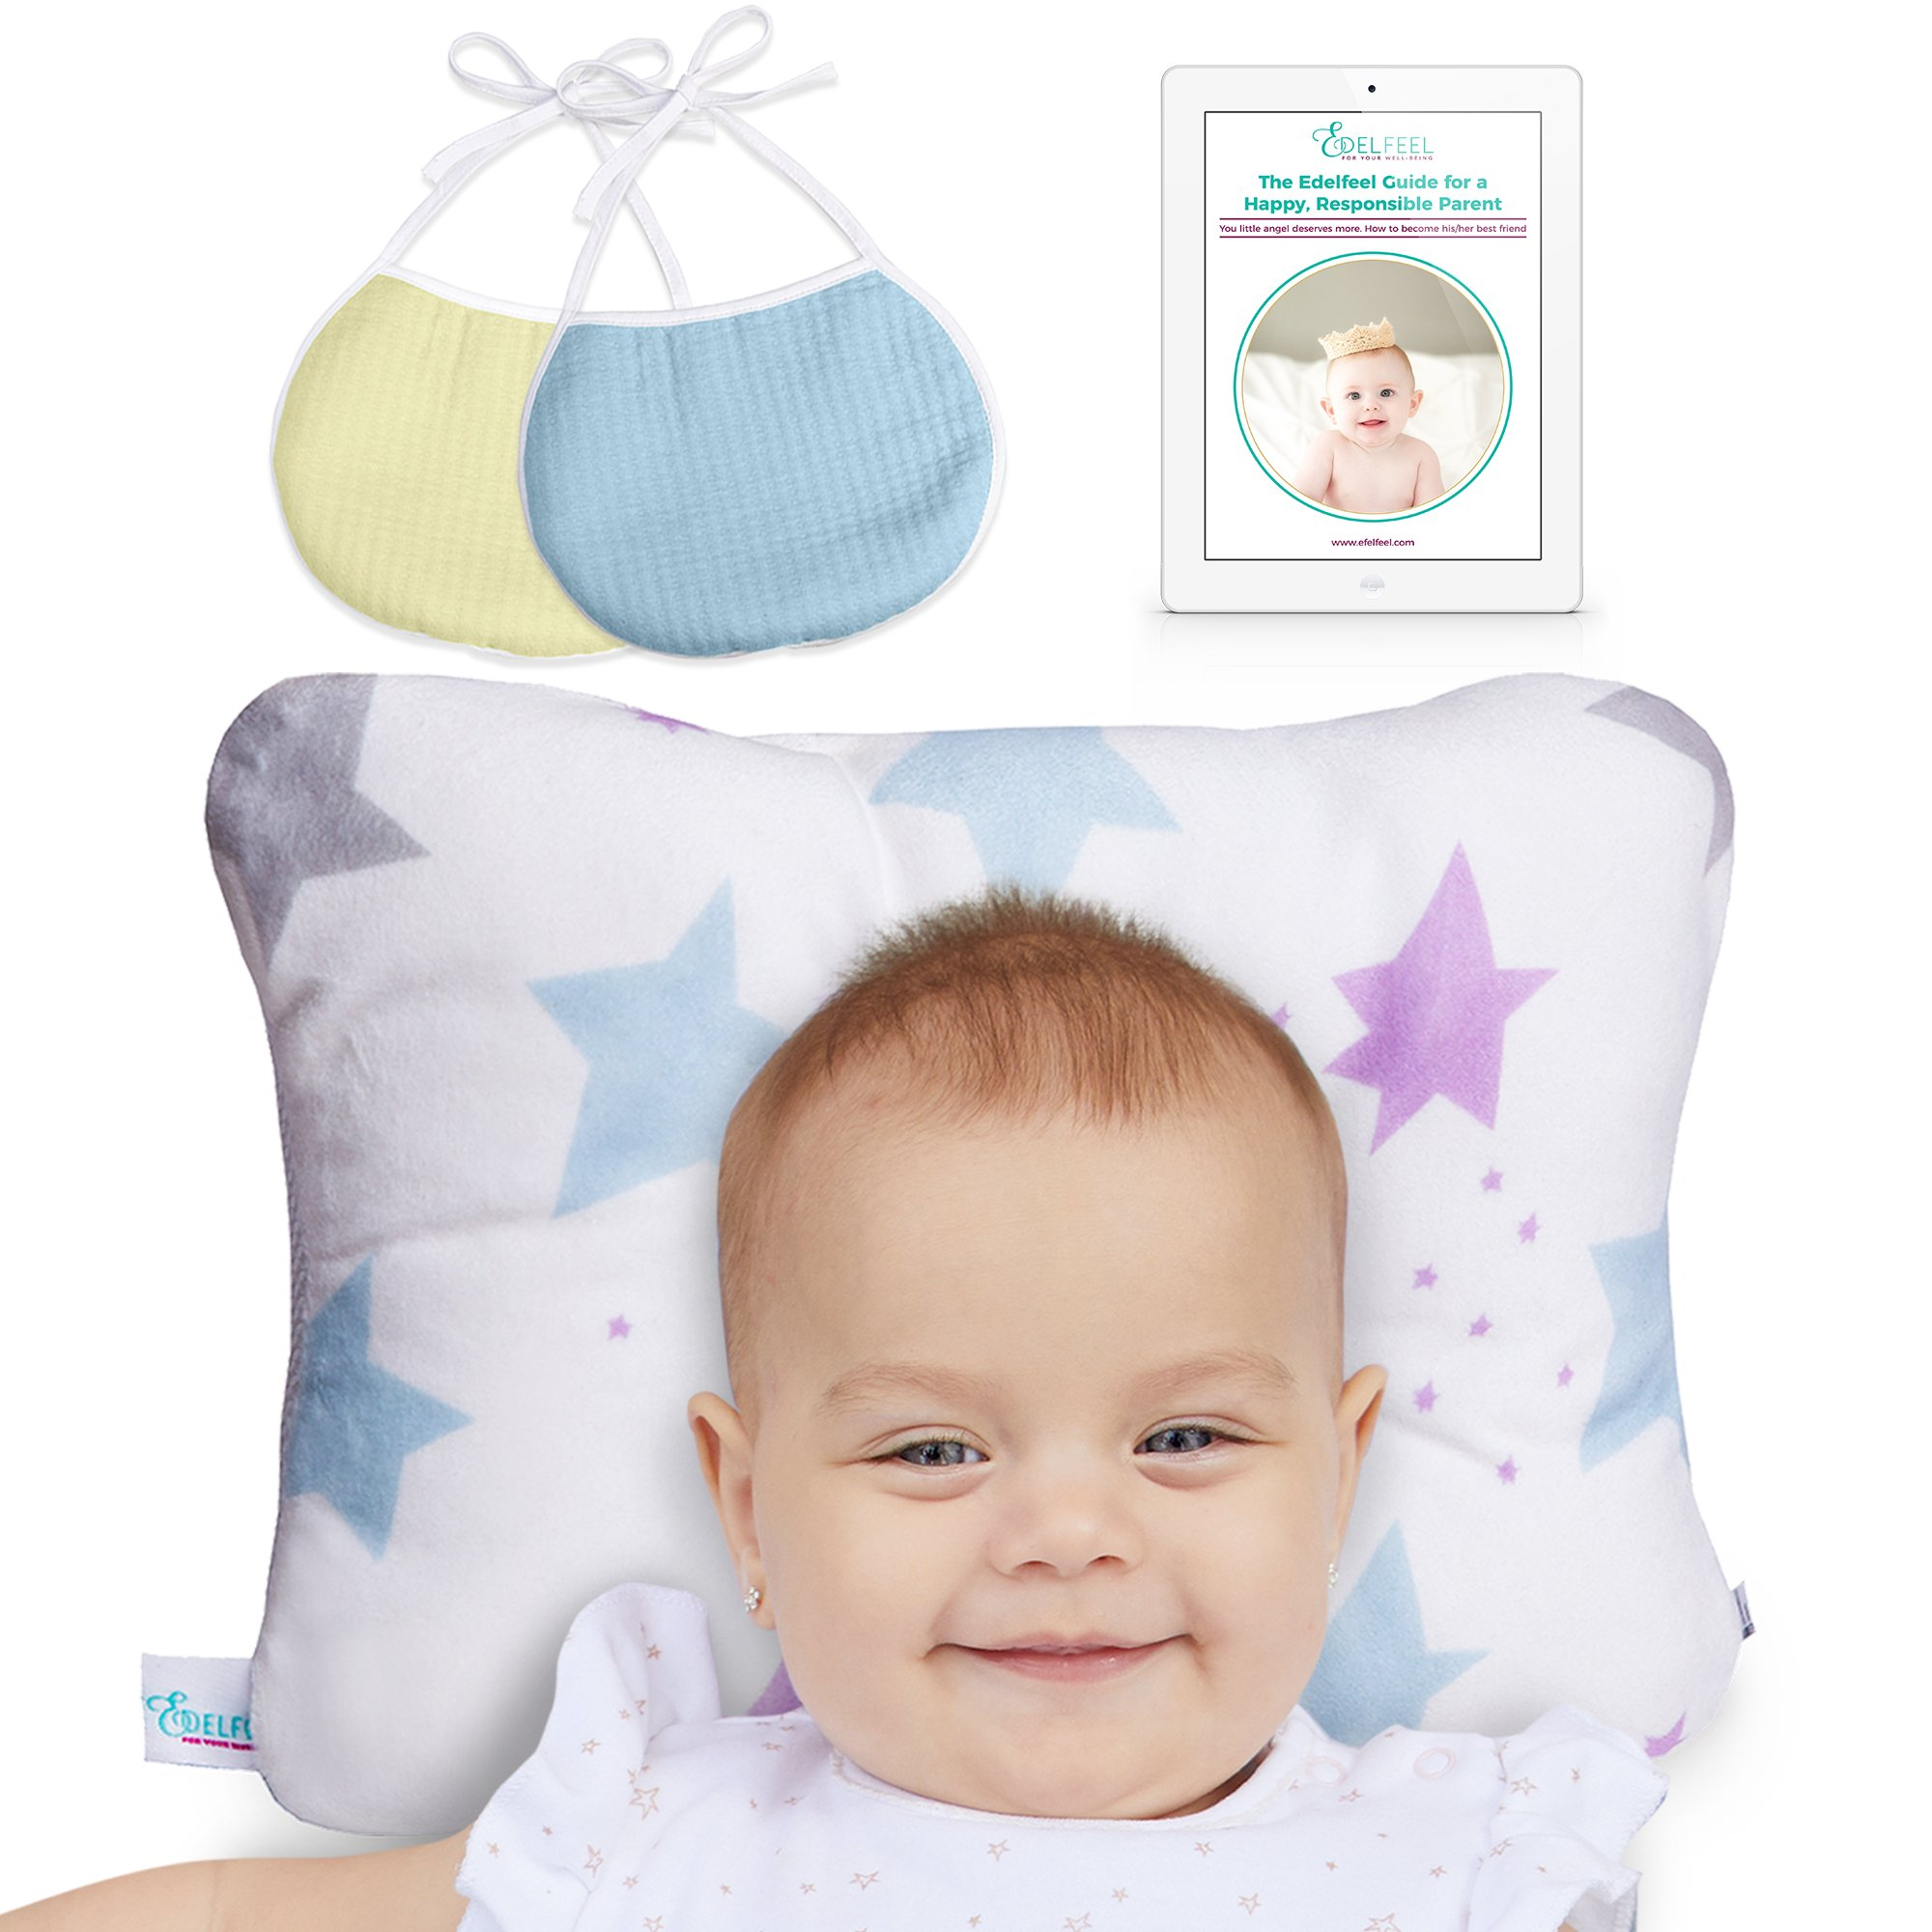 Baby Pillow Head Shaping | Newborn Pillow for Sleeping | Breathable & Washable Prevent Flat Head Infant Pillow | Include Baby Shower Gift 2 Baby Bibs and Ebook